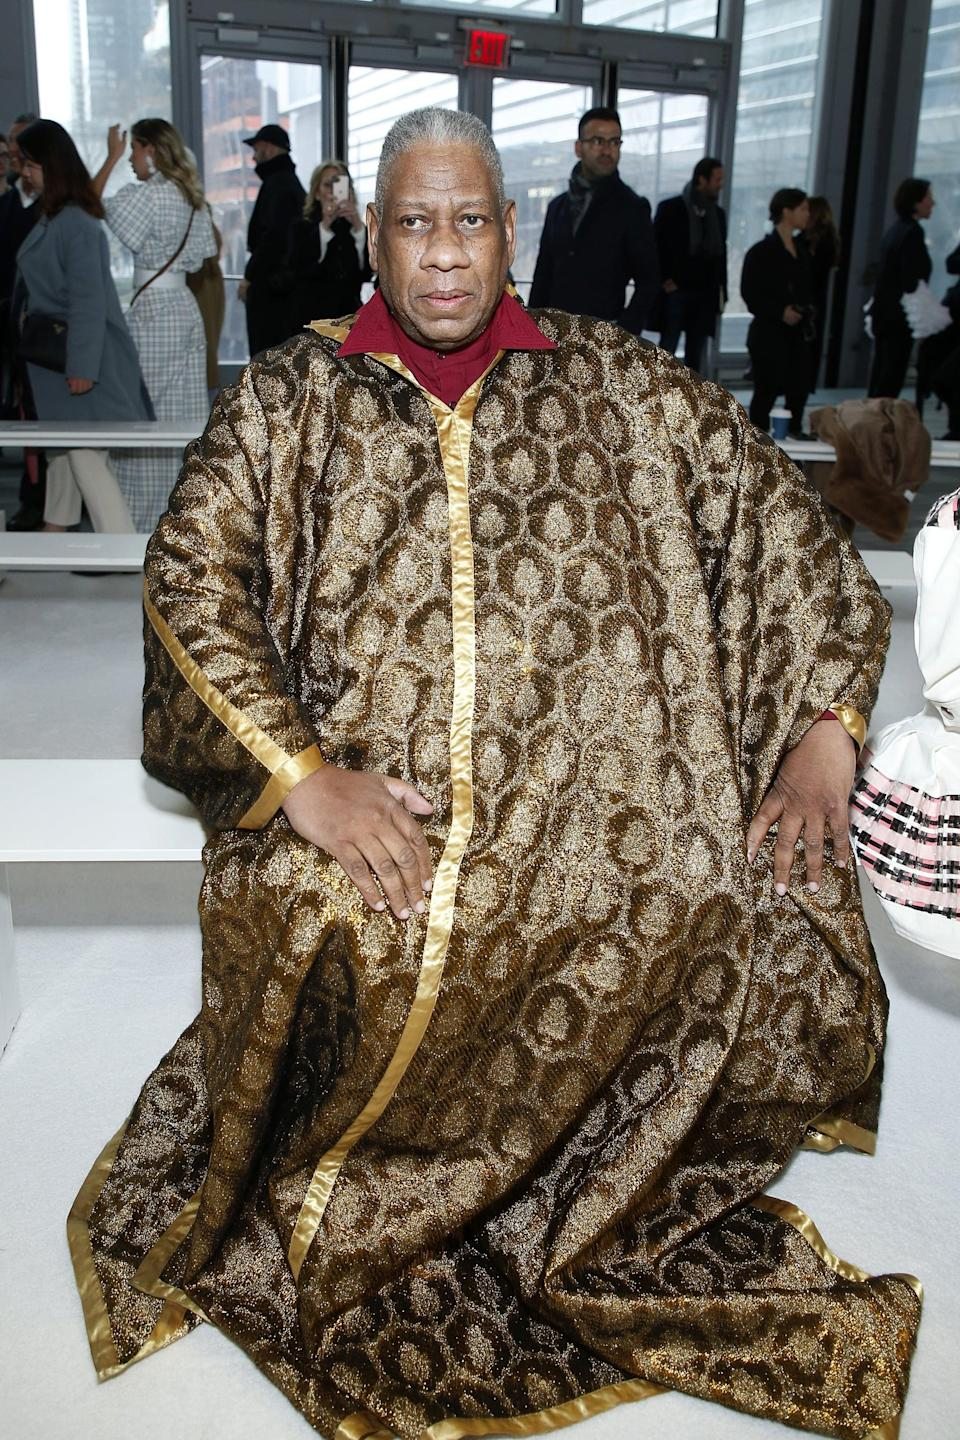 NEW YORK, NEW YORK - FEBRUARY 10: André Leon Talley attends the front row for Carolina Herrera during New York Fashion Week on February 10, 2020 in New York City. (Photo by John Lamparski/Getty Images)